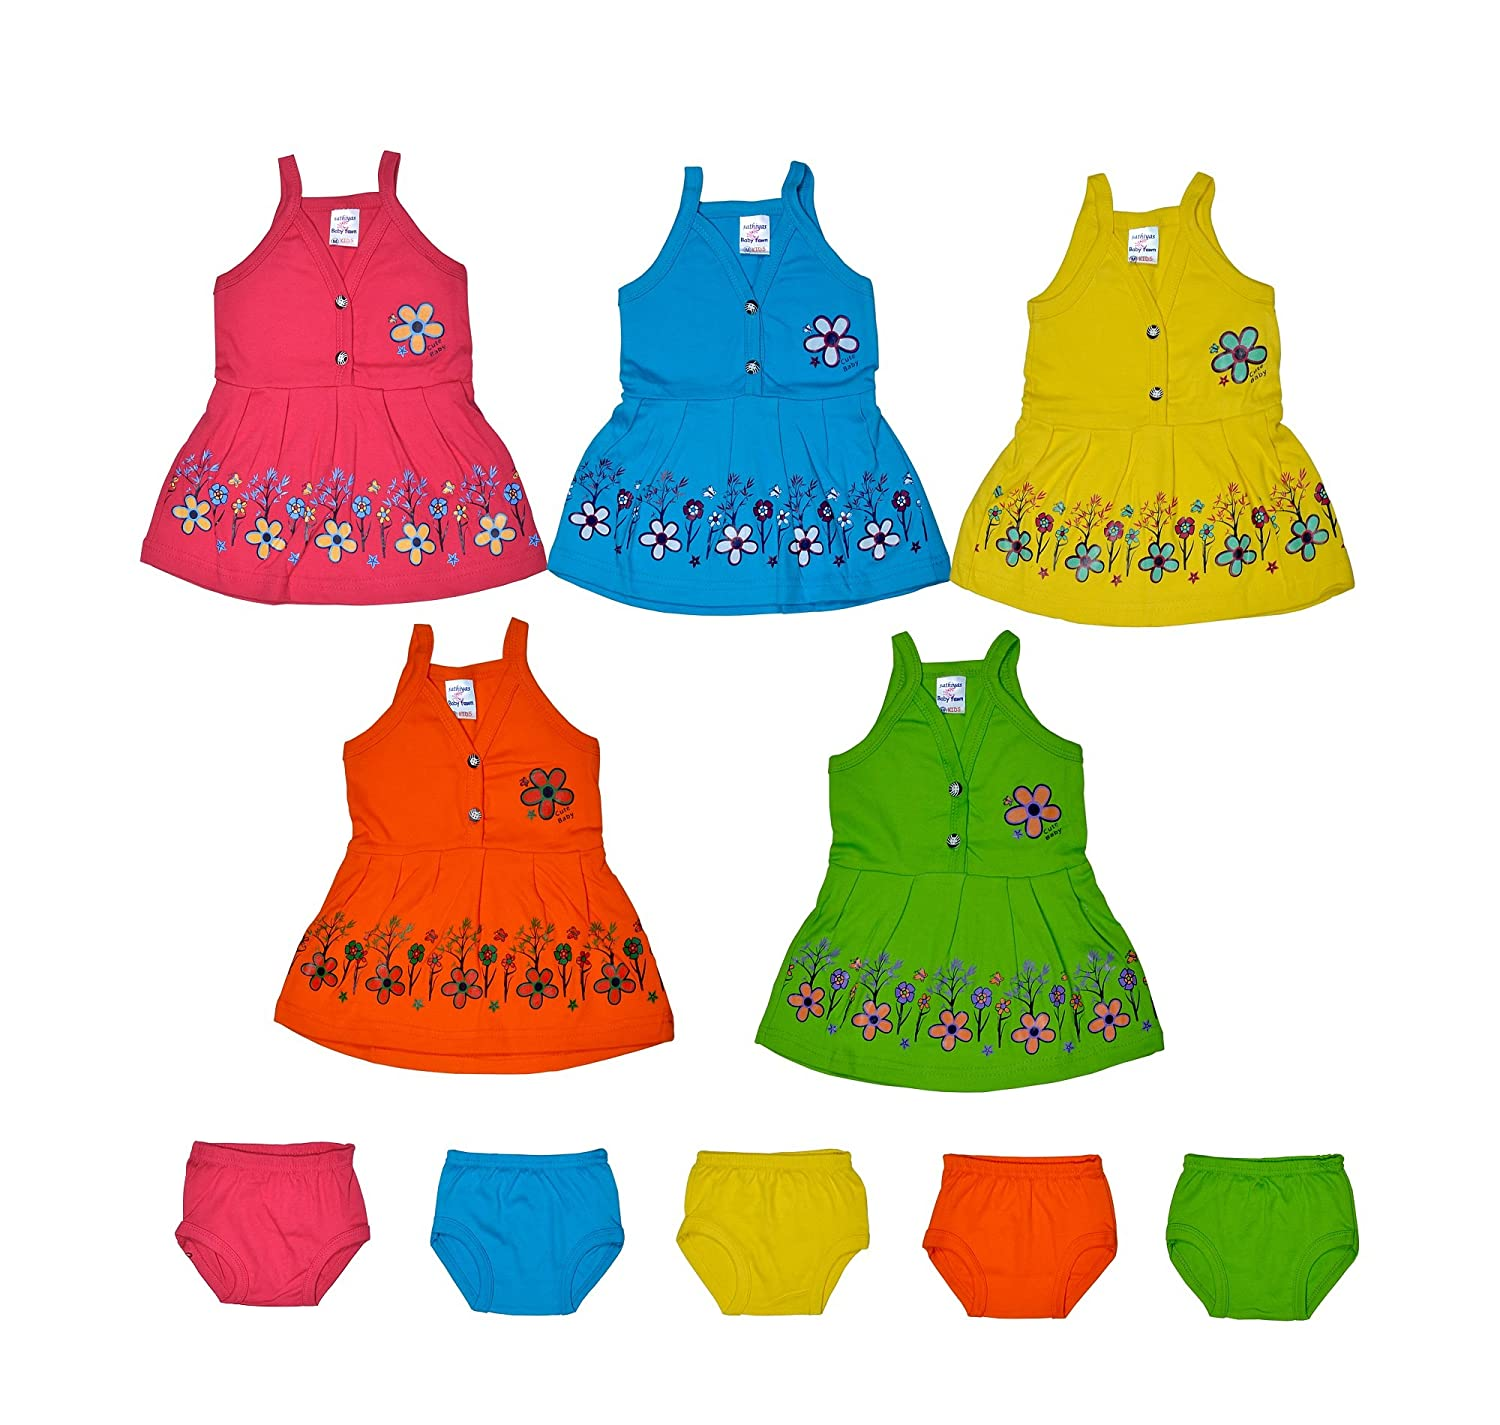 ce4825e01 Baby Girl's Clothes: Buy Newborn Baby Girl's Clothes Online at Low ...